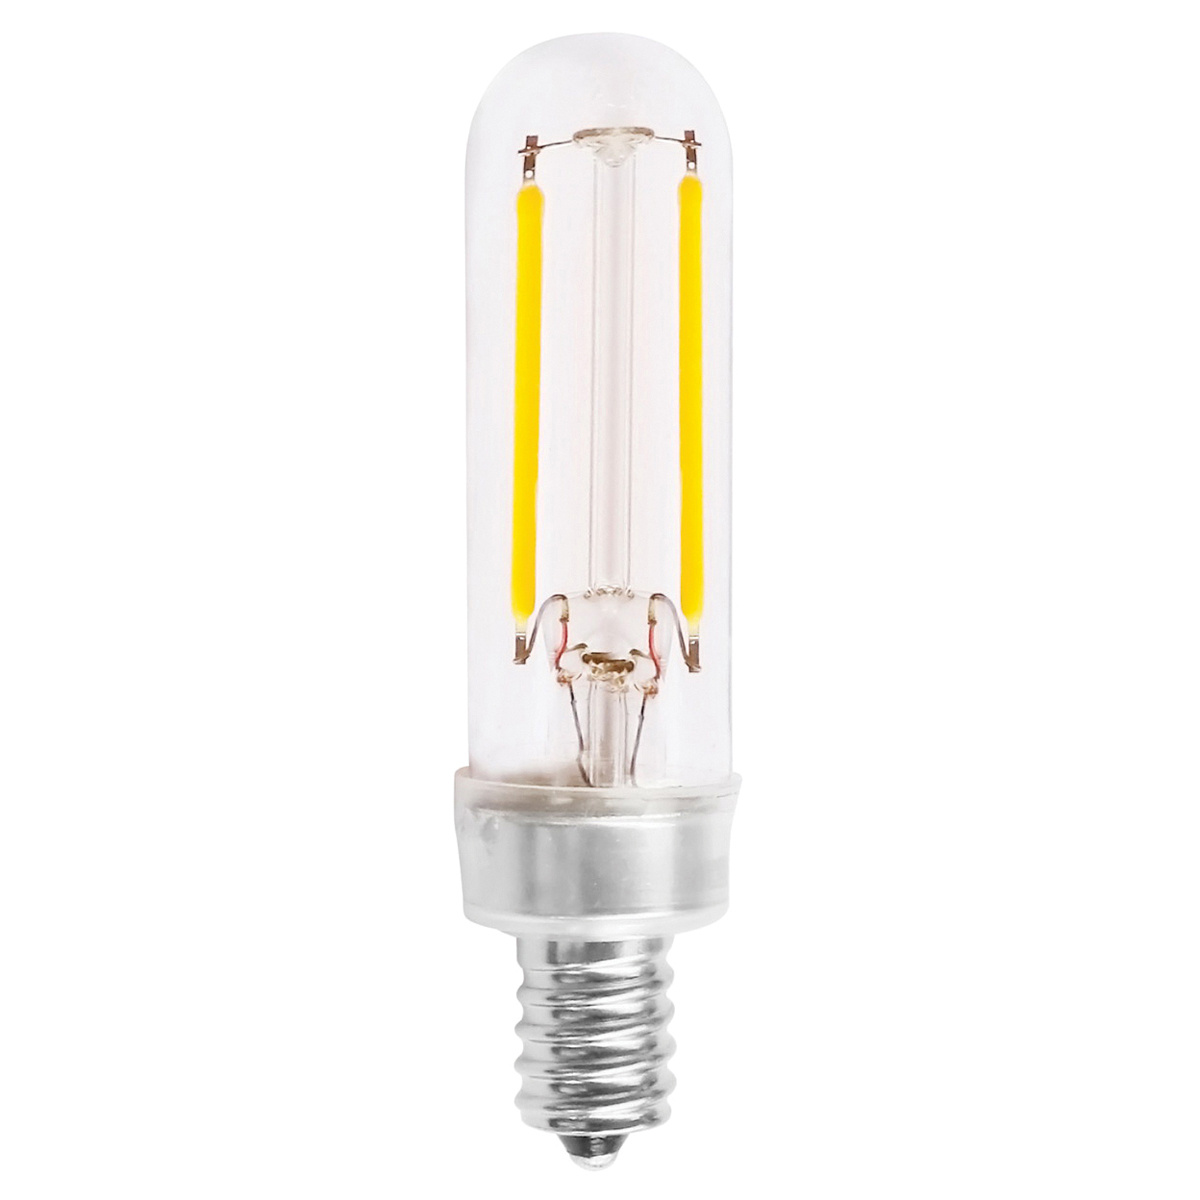 Satco S8555 Dimmable T6 Led Specialty Filament Lamp E12 Candelabra 2 5 Watt 180 Lumens 90 Cri 2700k Warm White